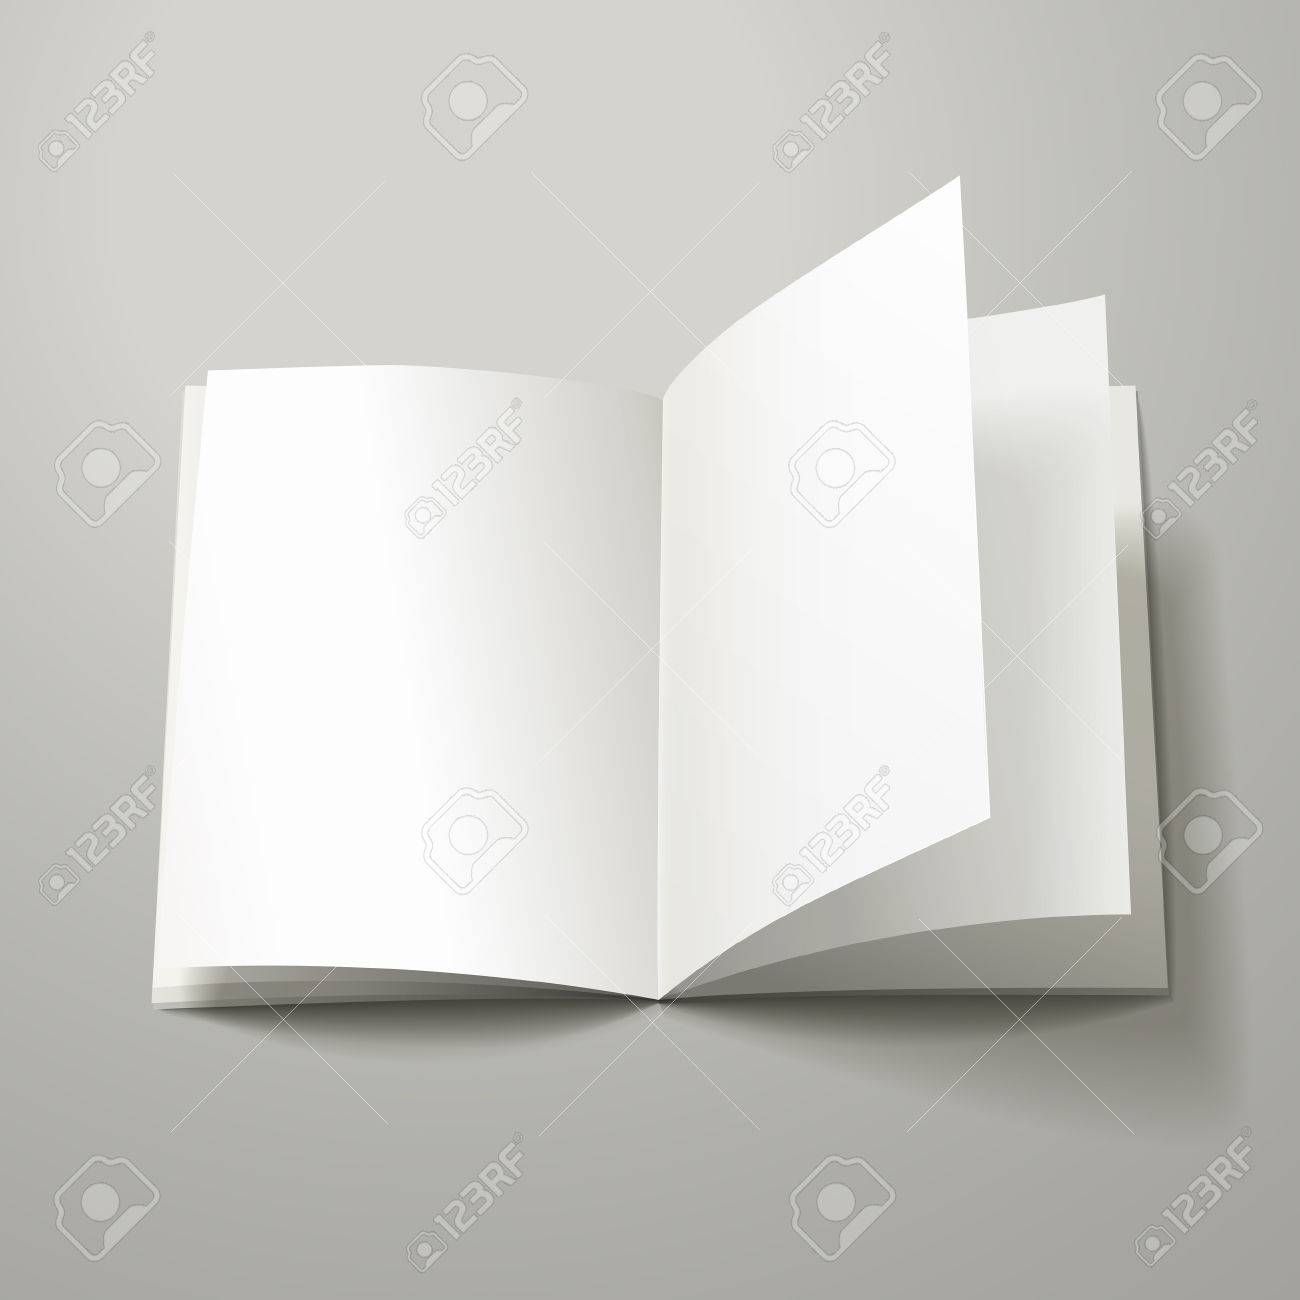 blank open book template isolated on grey background royalty free